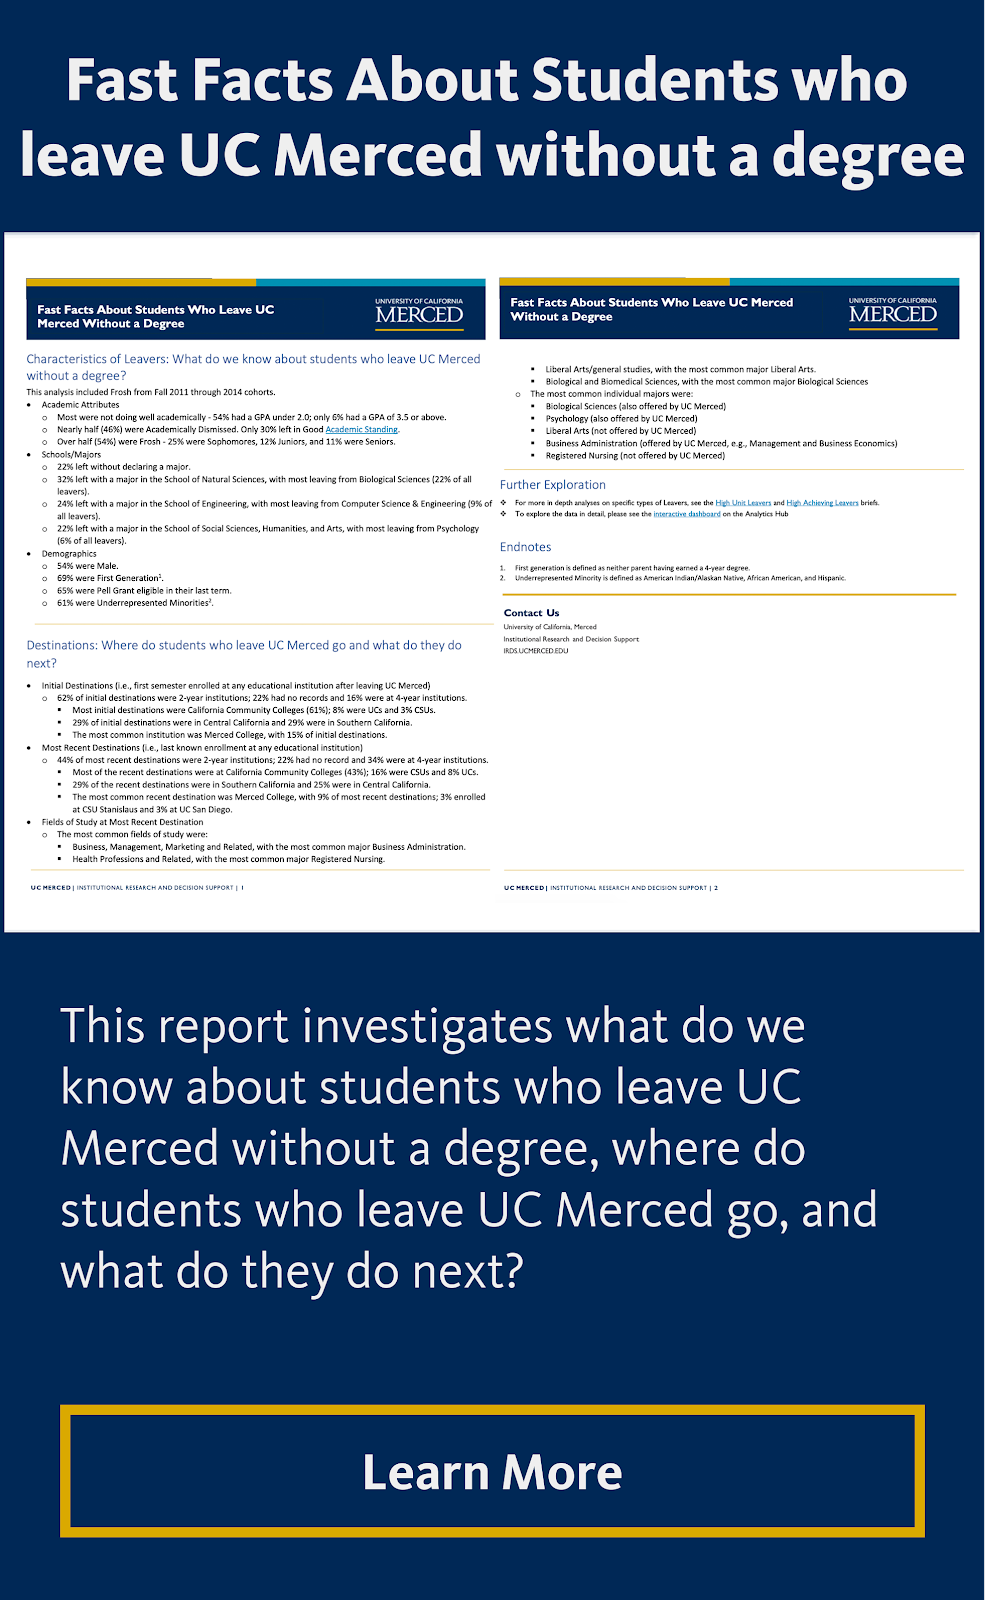 Fast Facts About Students who leave UC Merced without a degree